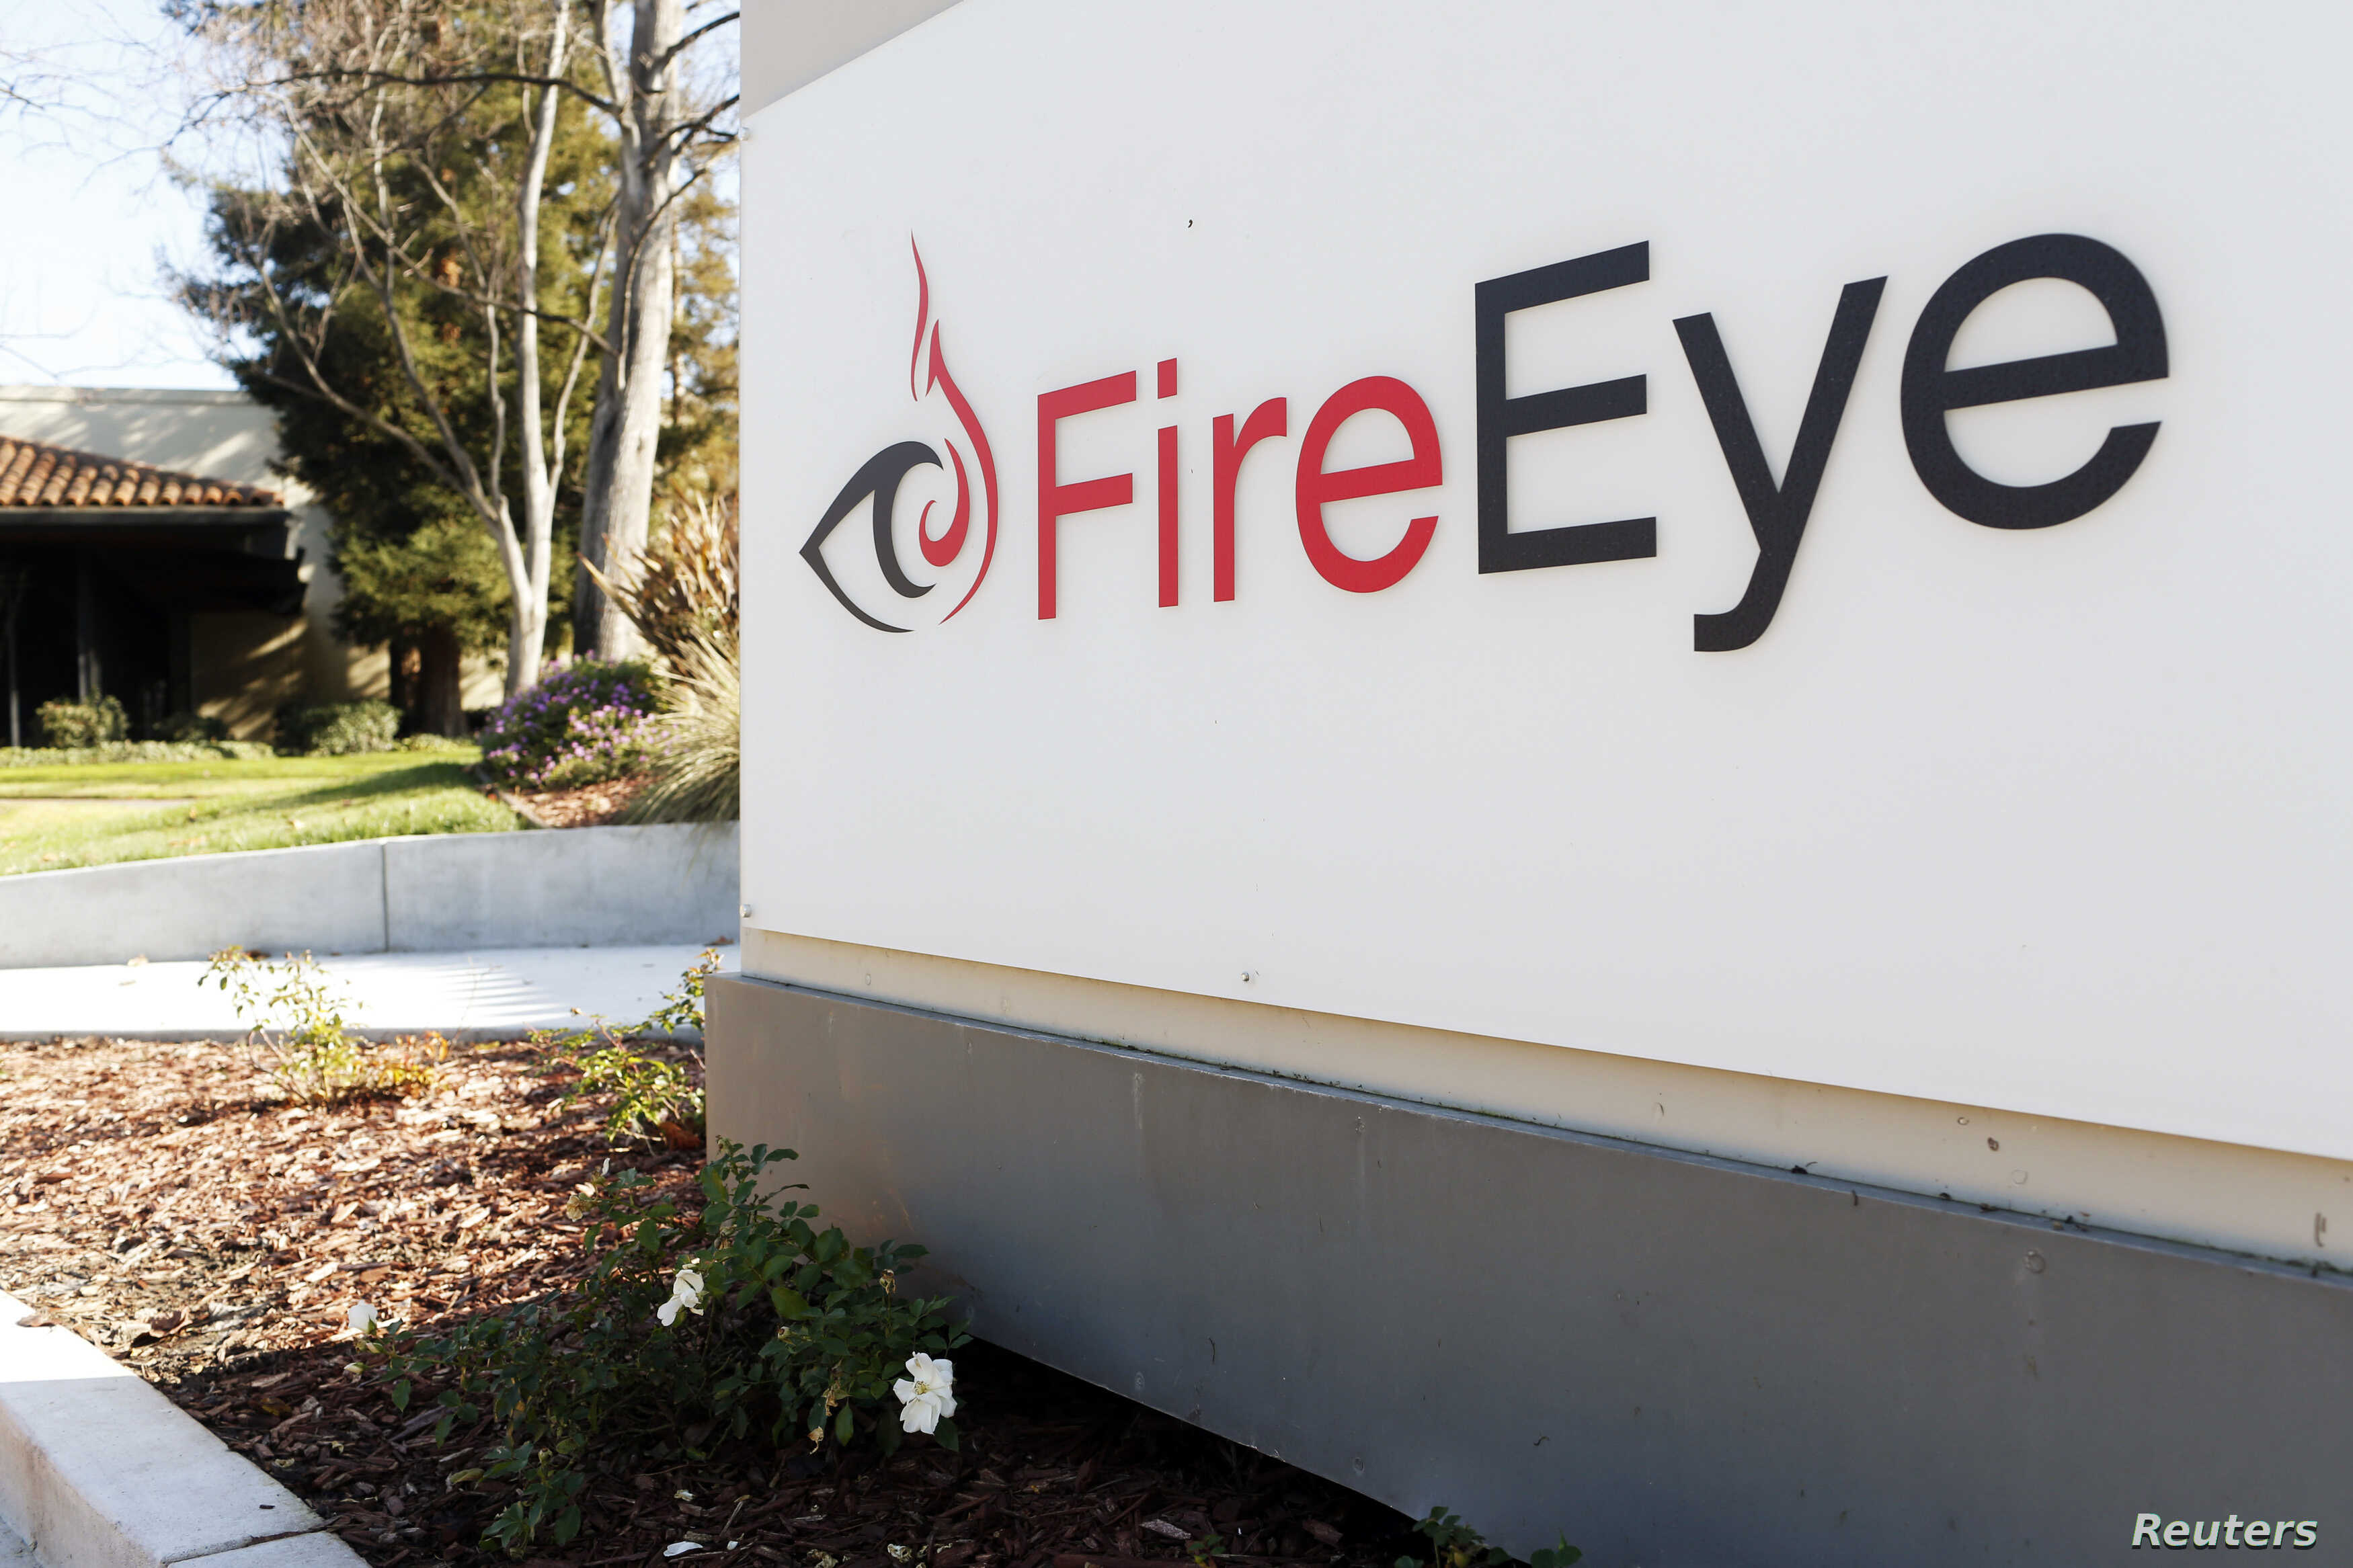 "The FireEye logo is seen outside the company's offices in Milpitas, California, December 29, 2014. FireEye is the security firm hired by Sony to investigate last month's cyberattack against Sony Pictures. Picture taken December 29.     REUTERS/Beck Diefenbach (UNITED STATES - Tags: BUSINESS SCIENCE TECHNOLOGY CRIME LAW LOGO) - RTR4JTRG 美国加州的网络安全公司""火眼(FireEye)""的标徽(2015年1月1日)"